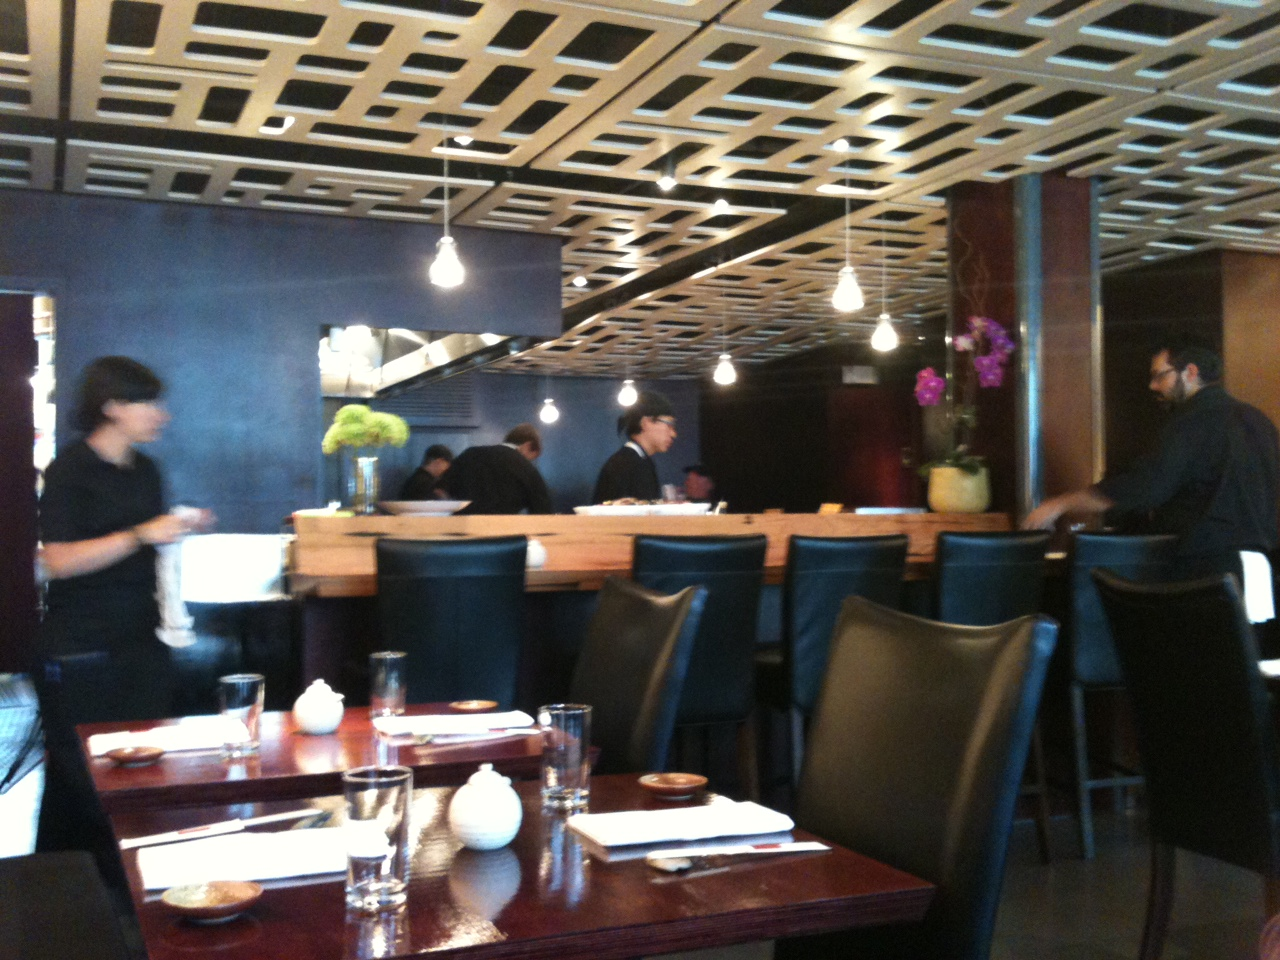 miyake s new restaurant in portland maine is a perfect backdrop